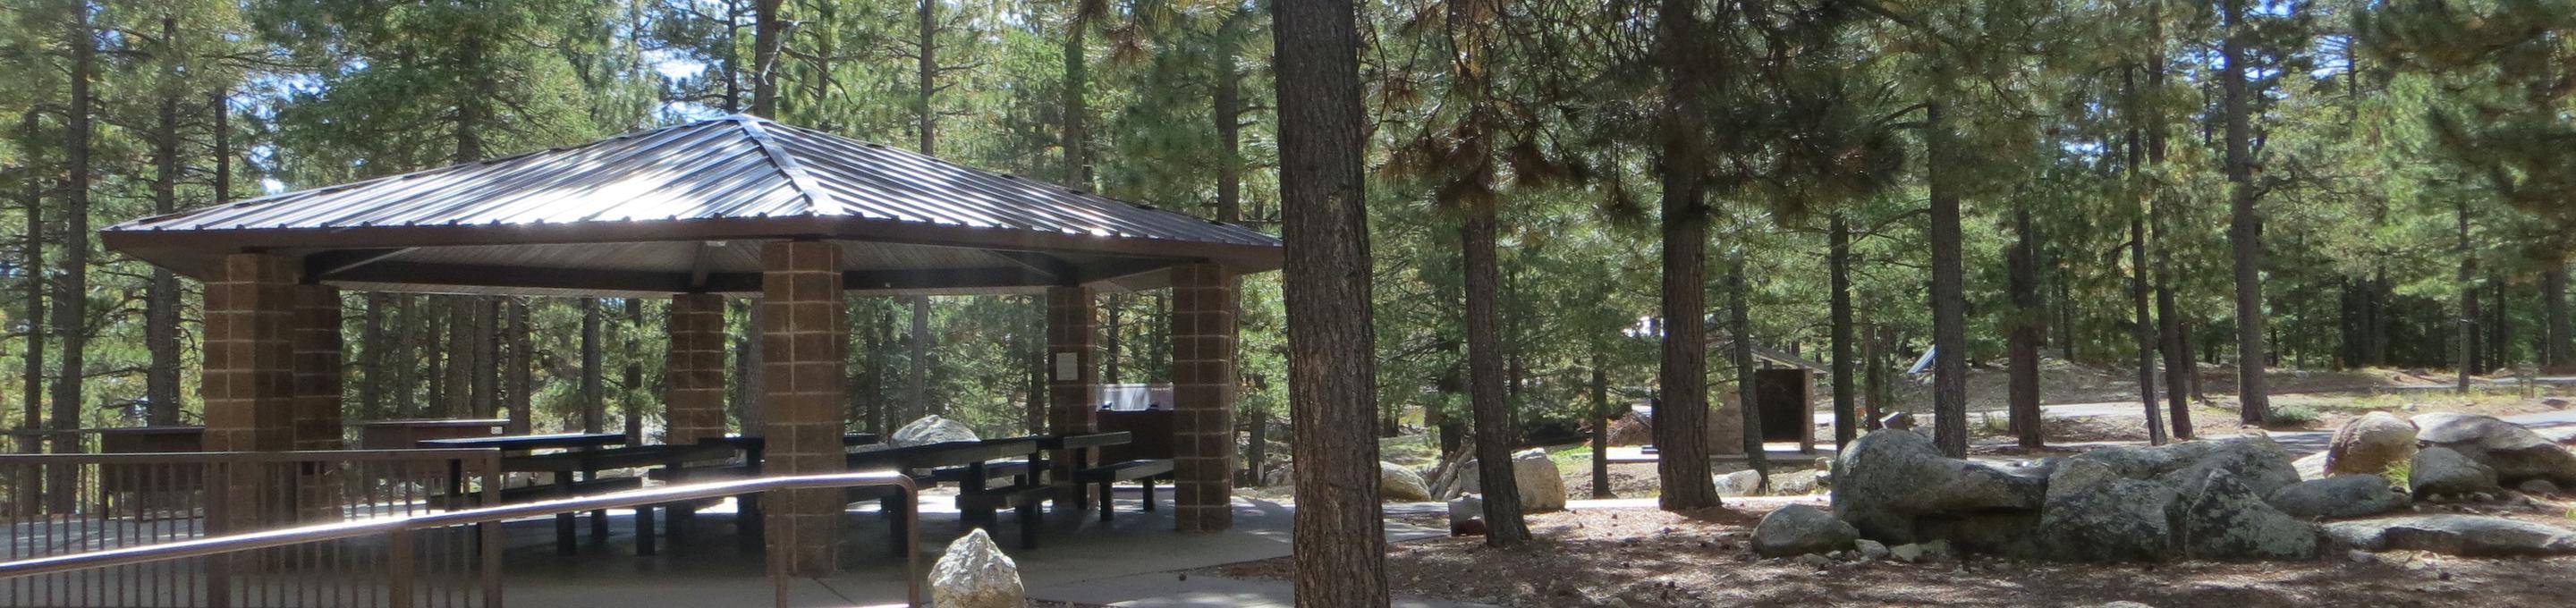 Whitetail Campground Group Site #04 featuring large ramada with multiple picnic tables, camping spaces, and food storage.